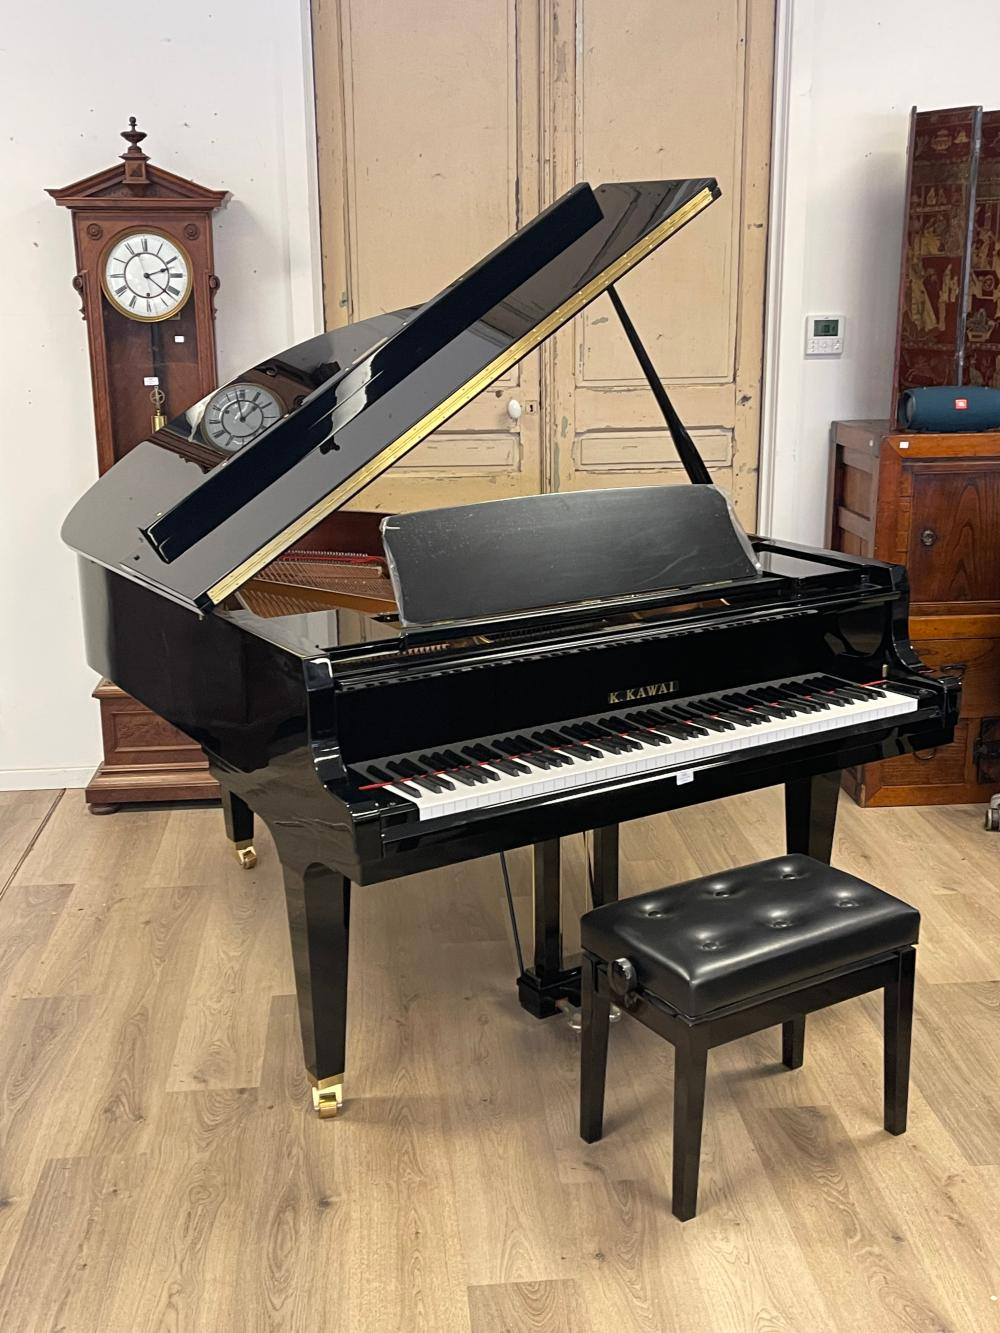 Pristine Kawai Grand Piano. Ebonized cabinet work along with a matching adjustable stool, dated 04/2017 model GL-40 Serial number 2703620. still retains plastic coating on sheet music stand and pedals…